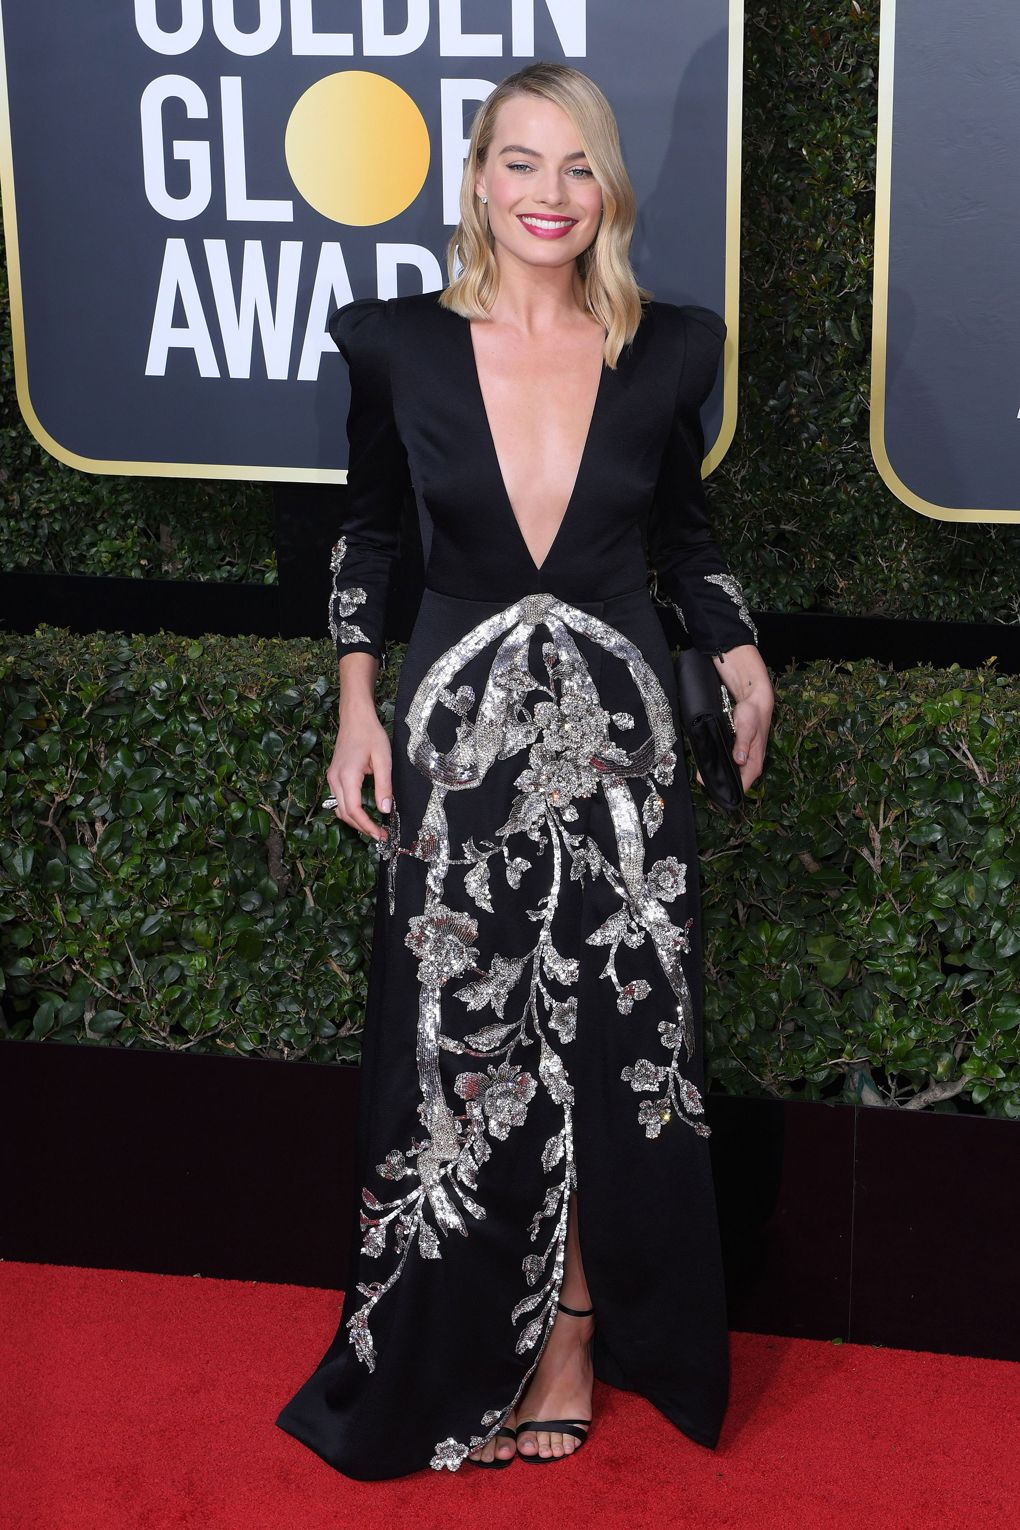 Red carpet 2018 Margot Robbie in Gucci, with Tiffany & Co. jewellery, Roger Vivier sandals and clutch - Photo credit Rex/Shutterstock - women empowerment - black dresses golden globes 2018 - times up